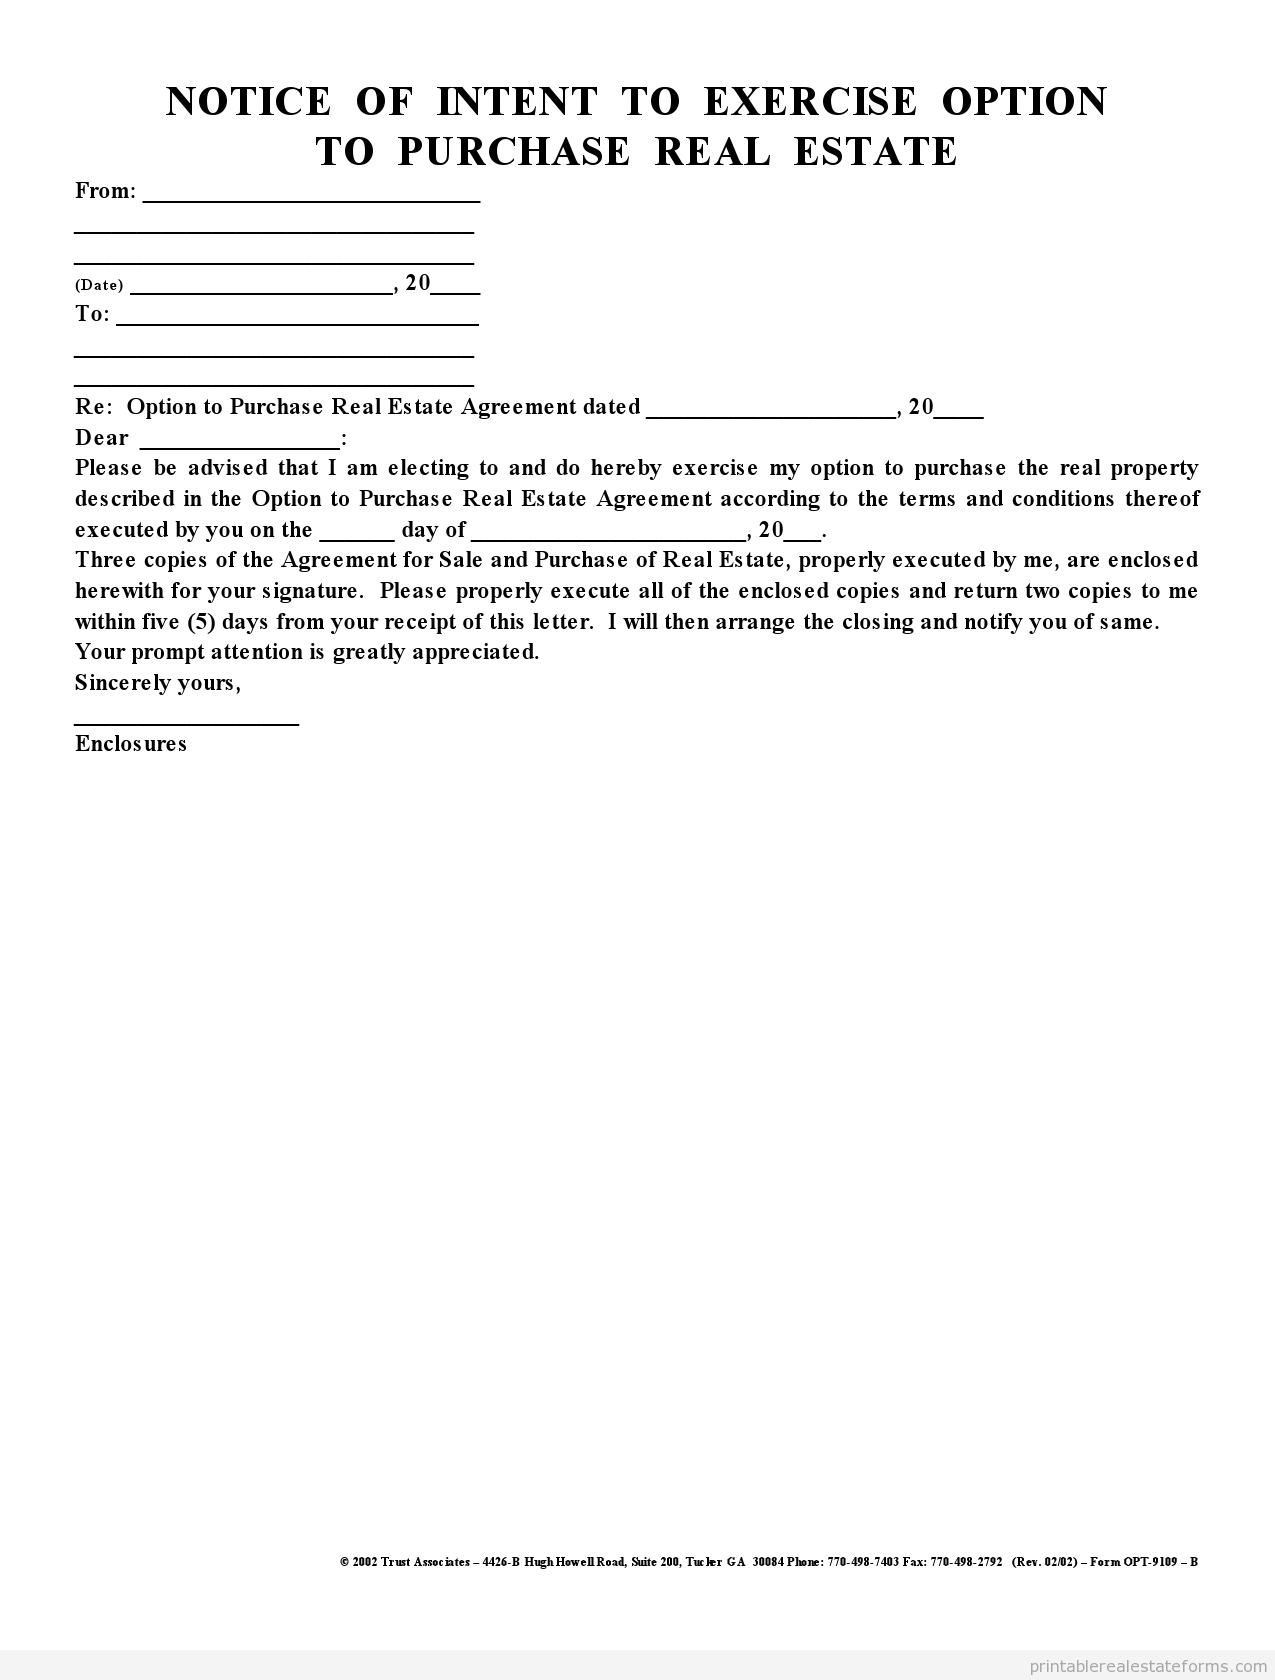 Sample Printable Notice Of Intent To Exercise Option Form